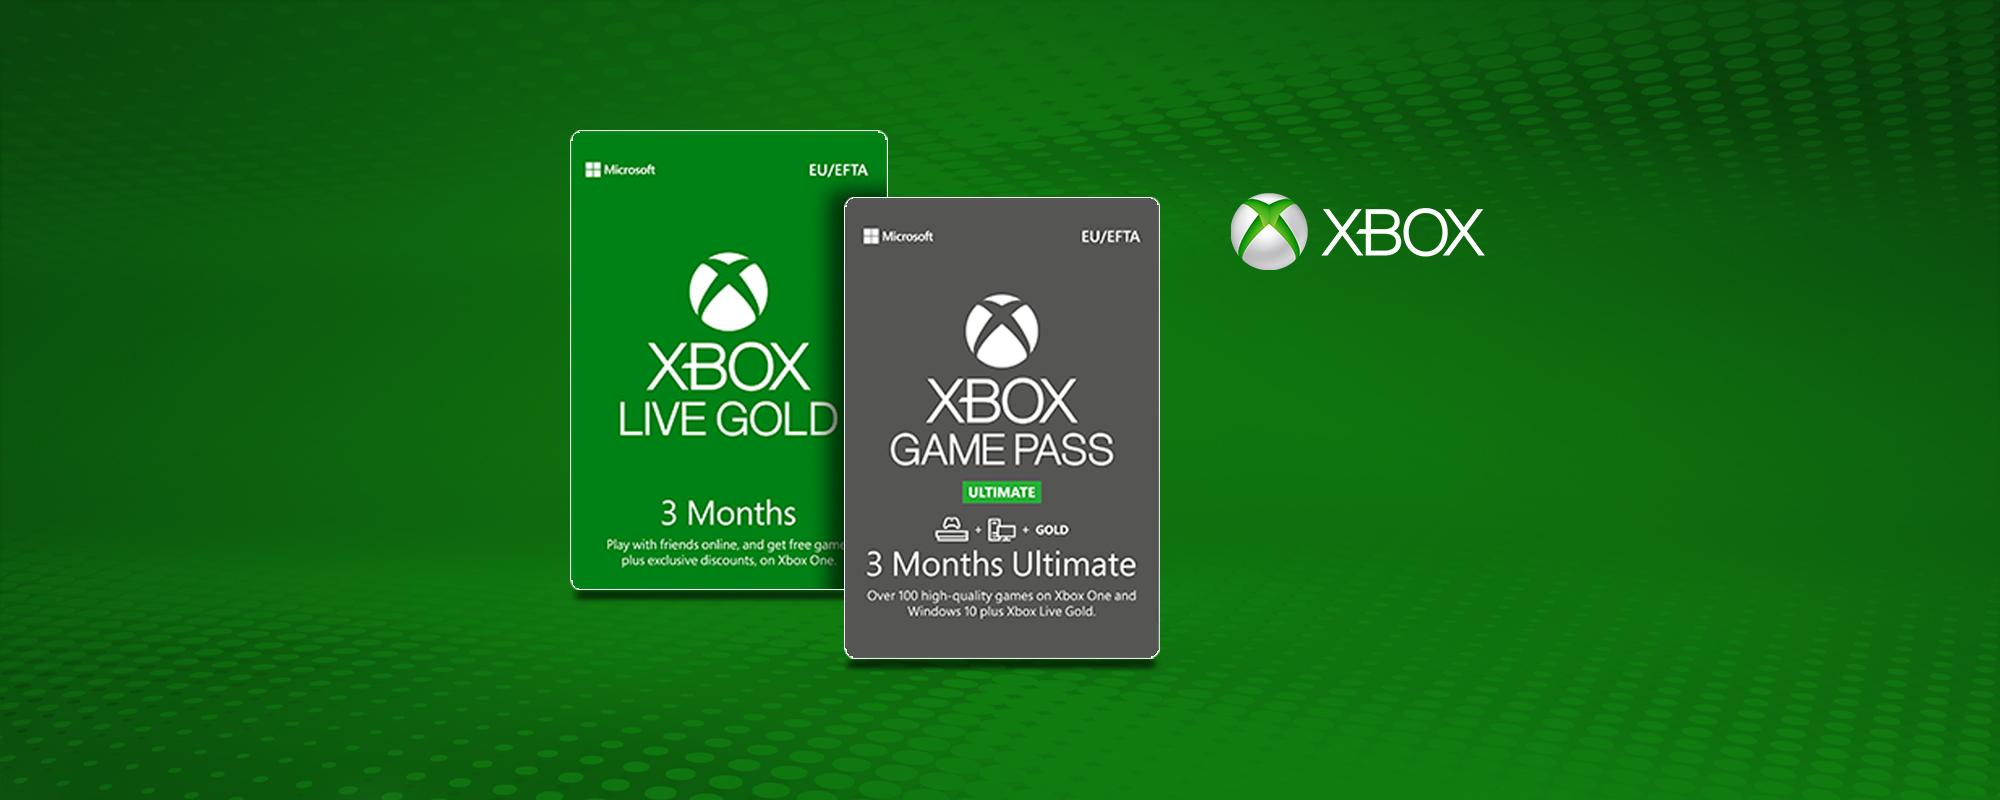 Xbox Live Gold & Xbox Game Pass digital codes.